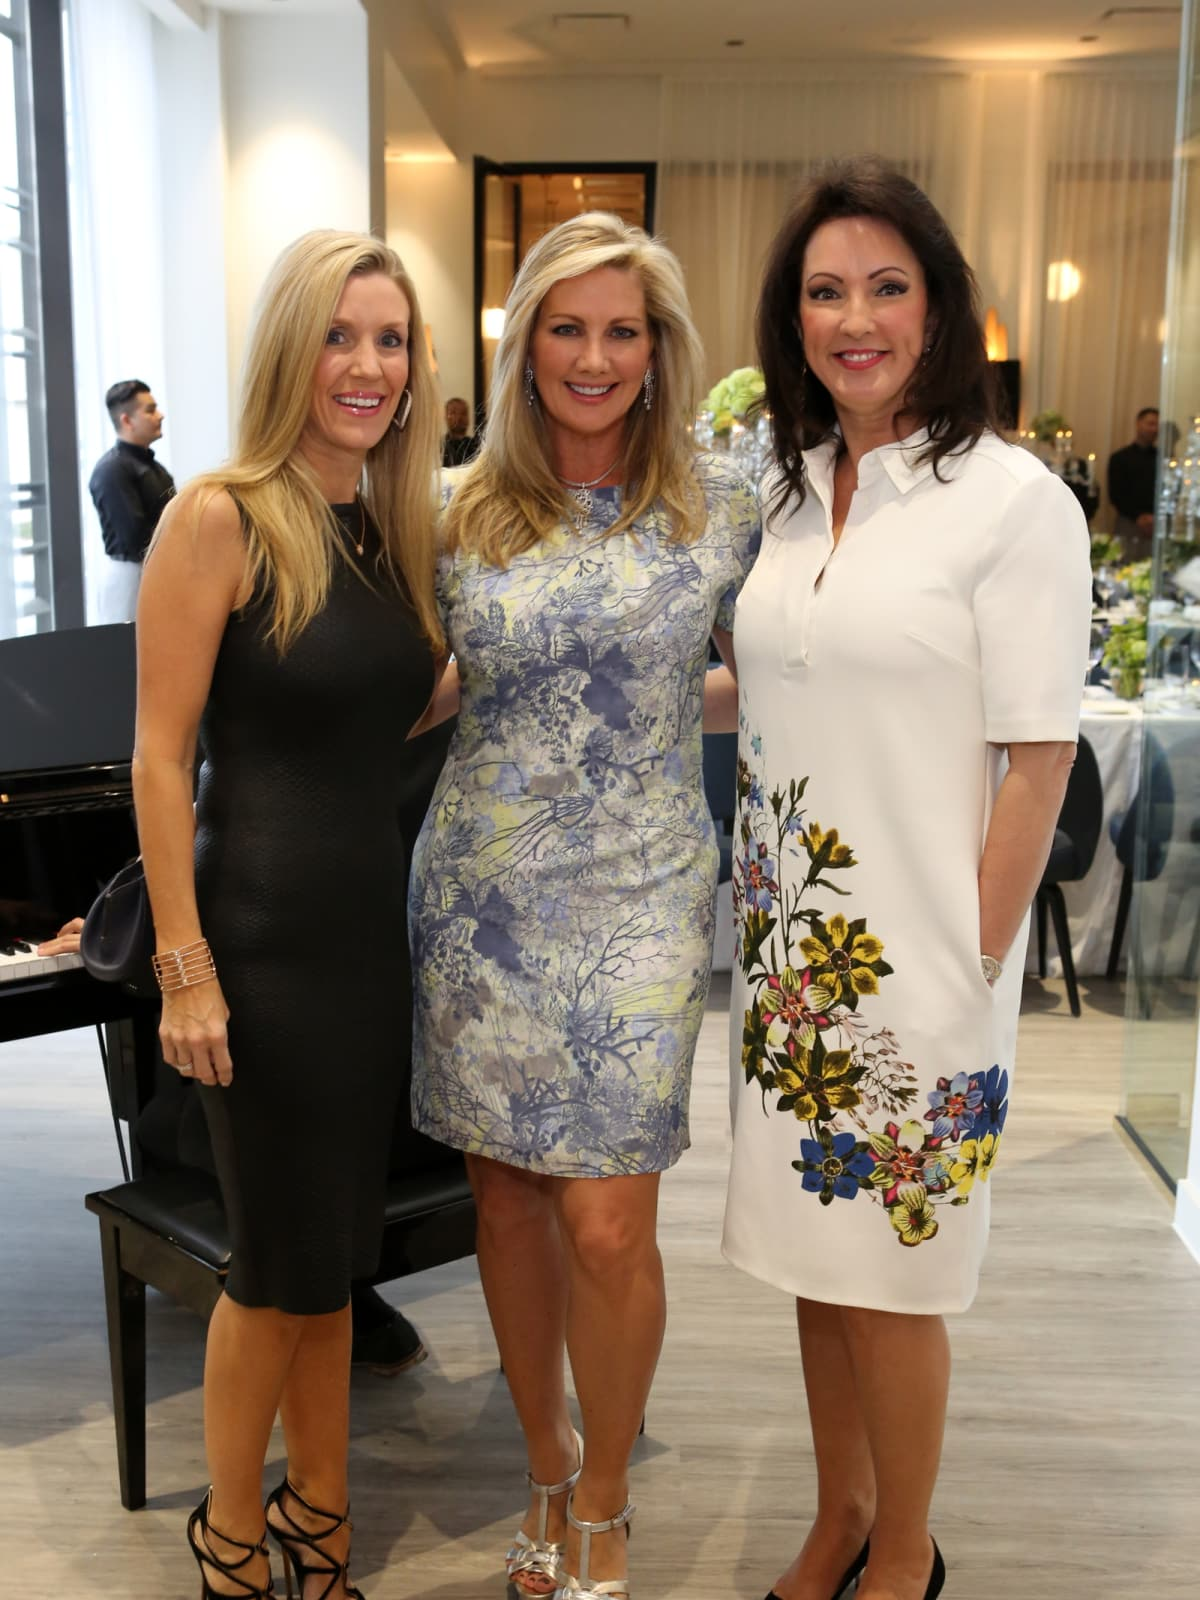 Saks Opening Dinner for HGO 4/16,  Michelle Smith, Anne Carl, Alicia Smith